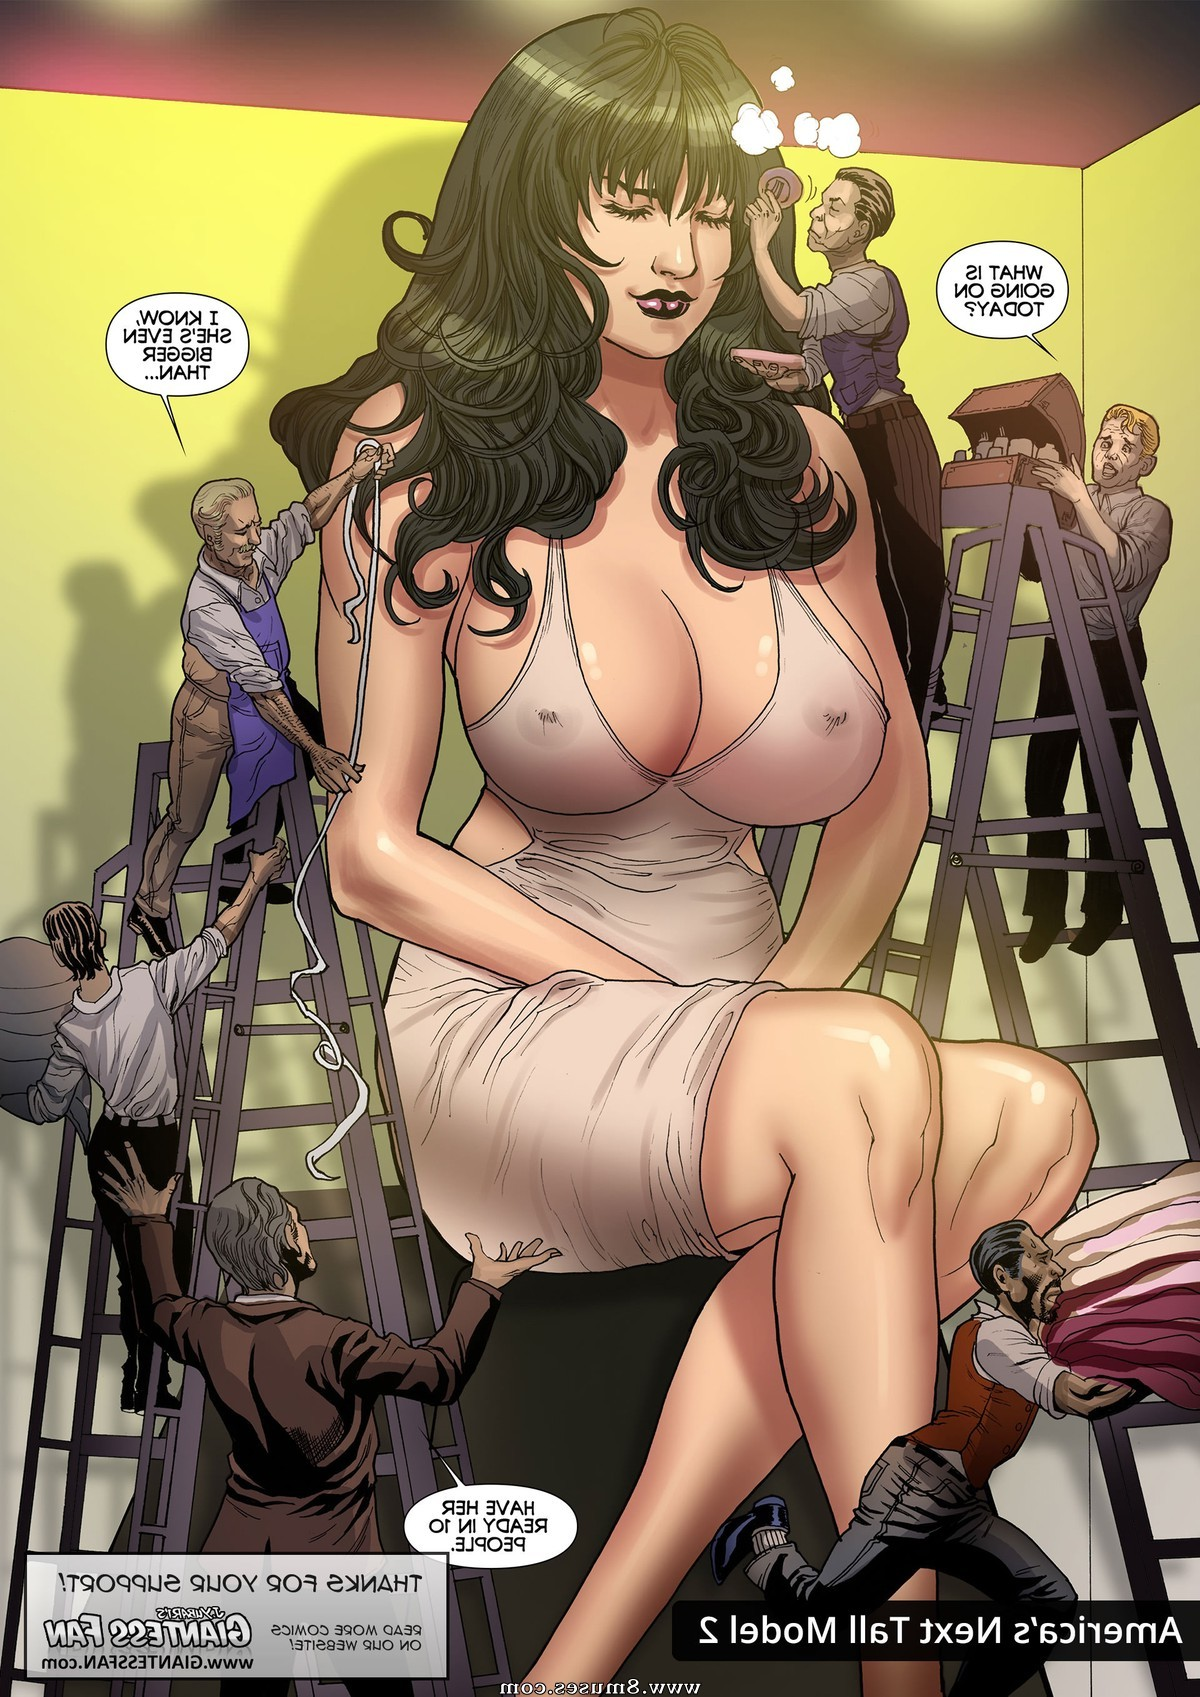 Giantess-Fan-Comics/Worst-Day-Ever/Issue-2 Worst_Day_Ever_-_Issue_2_24.jpg